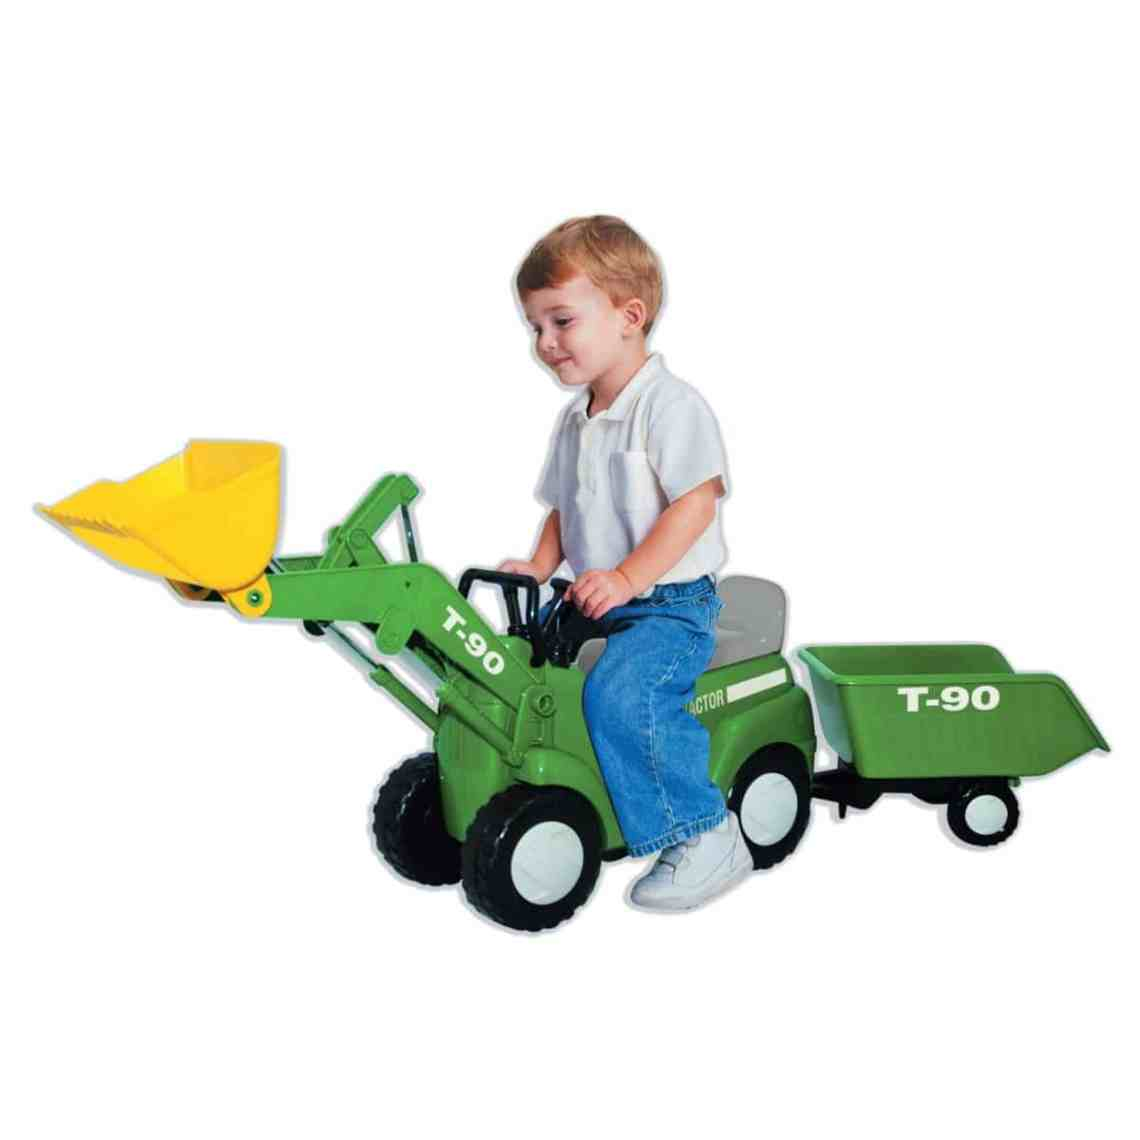 Best Gifts For Kids Excavator Peddal Ride Along Toy